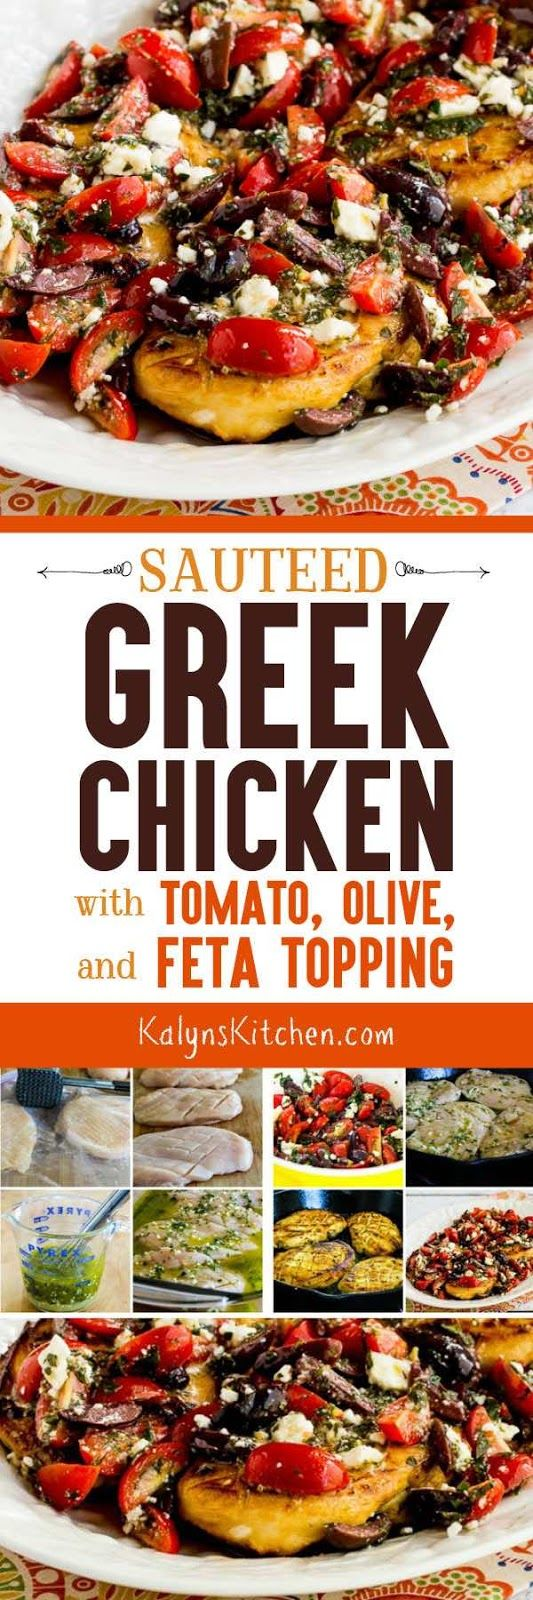 Sauteed Greek Chicken with Tomato, Olive, and Feta Topping is easy enough for an after-work dinner, and this tasty chicken is low-carb, low-glycemic, gluten-free, and South Beach Diet friendly. Use cherry tomatoes or grape tomatoes if it's not fresh tomato season. [found on KalynsKitchen.com]